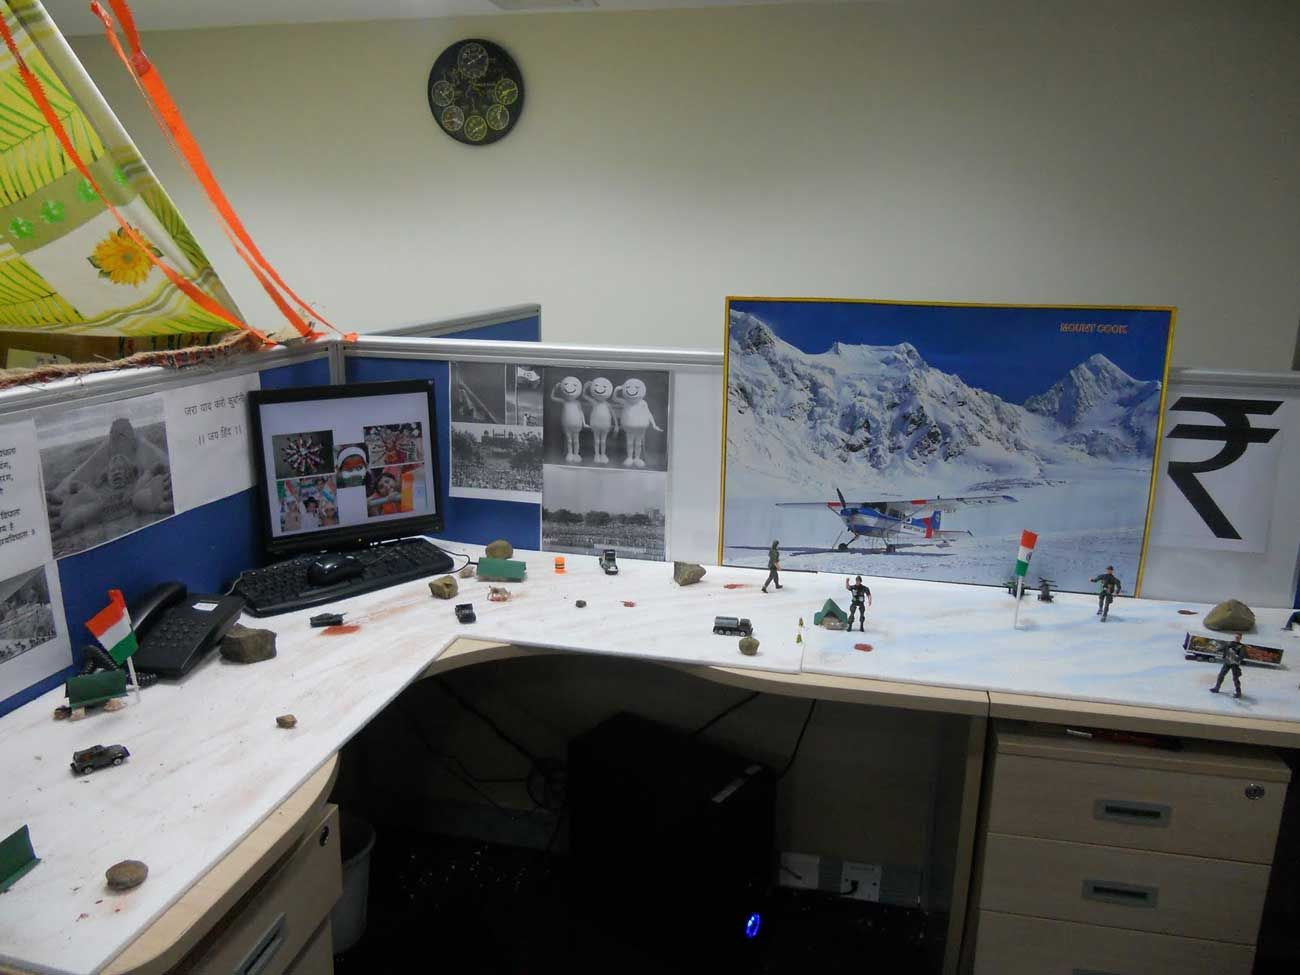 Cubicle desk decoration ideas winter http www Cubicle desk decorating ideas